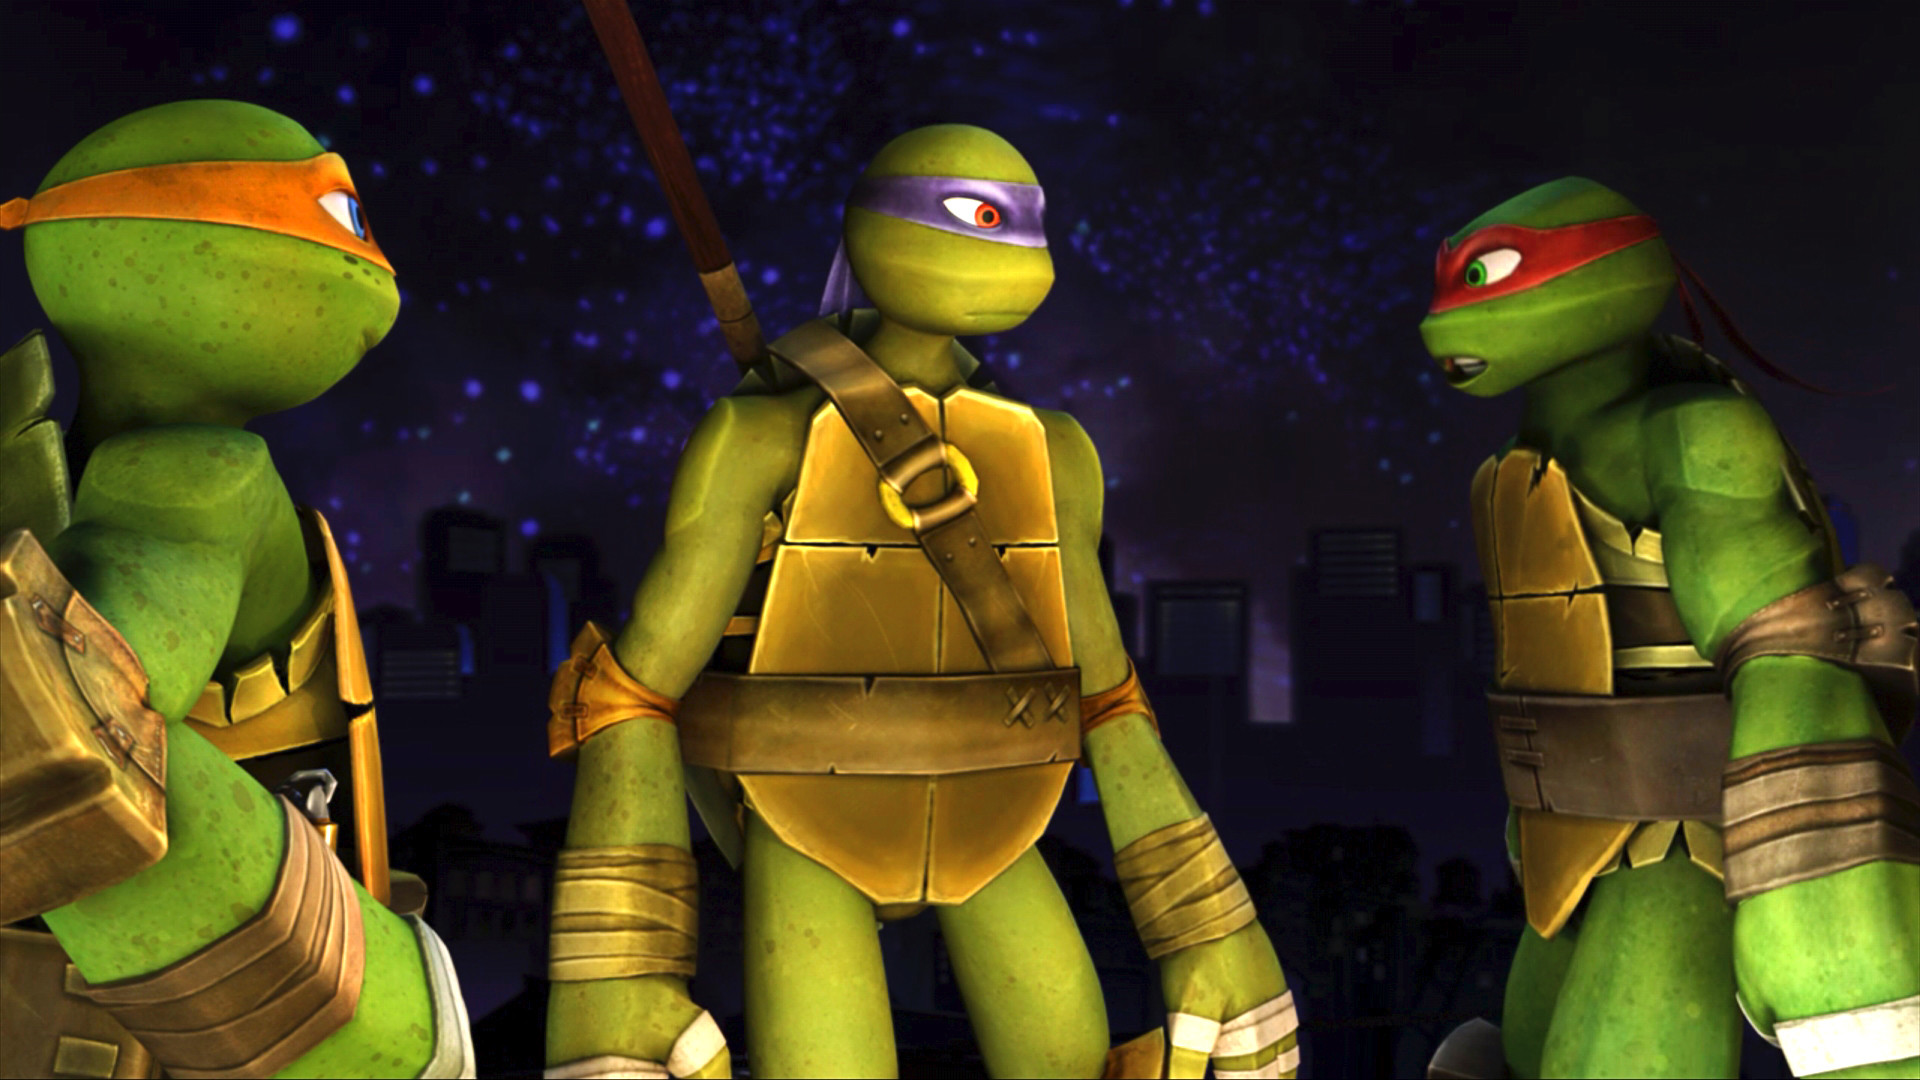 1920x1080 Review: Teenage Mutant Ninja Turtles: Danger of the Ooze feels cowa-bungled  | GameCrate